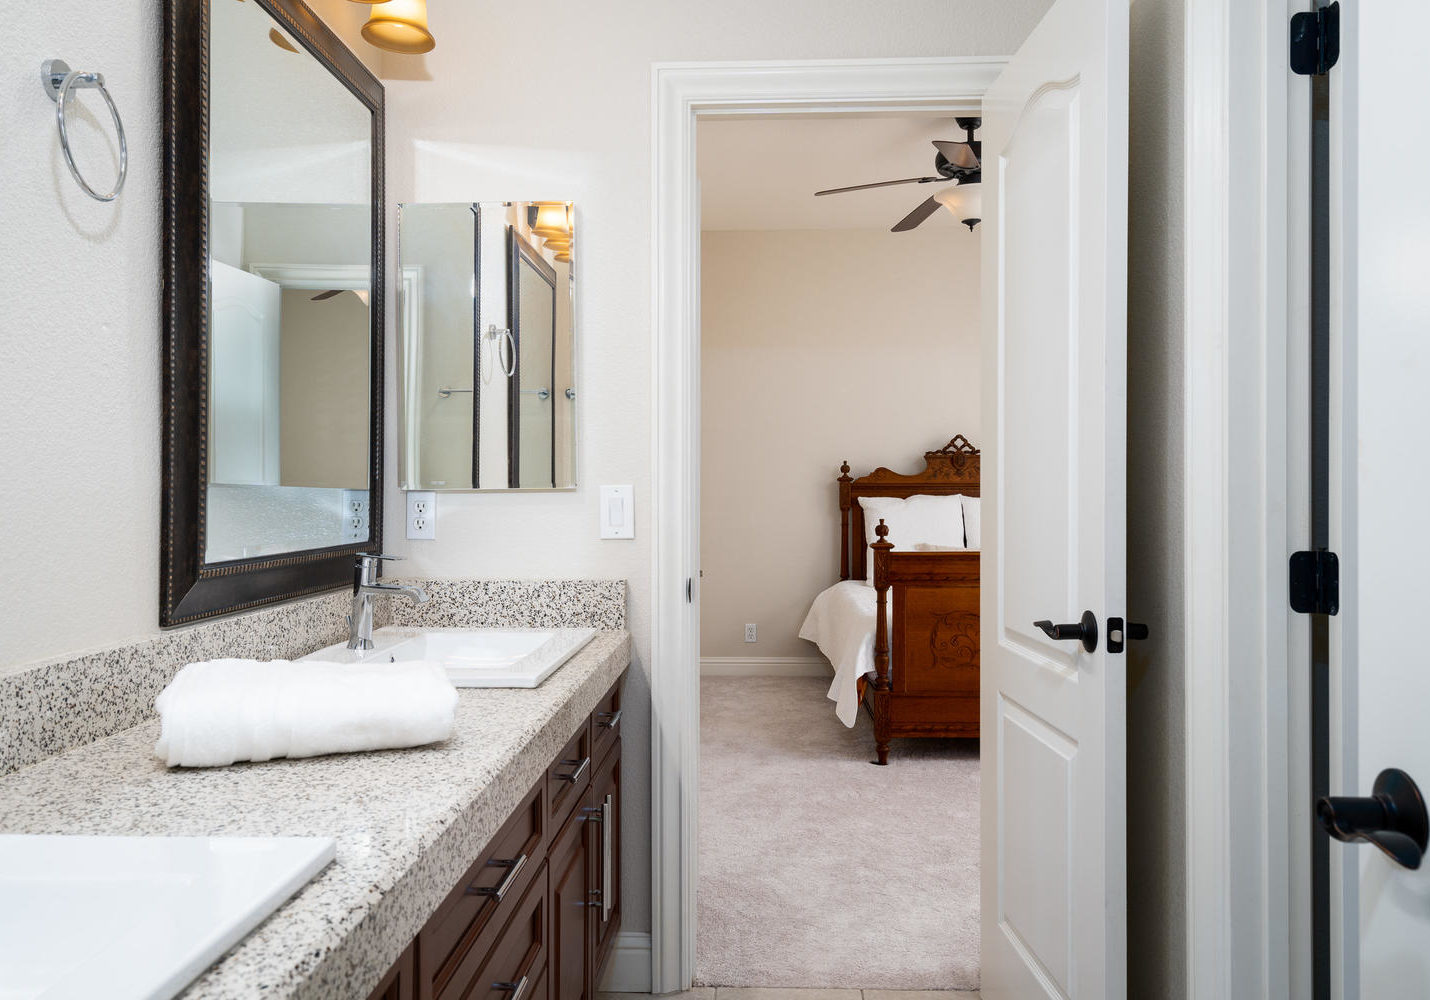 8755 Brookdale Cir Granite Bay-large-038-036-Bathroom-1500x1000-72dpi